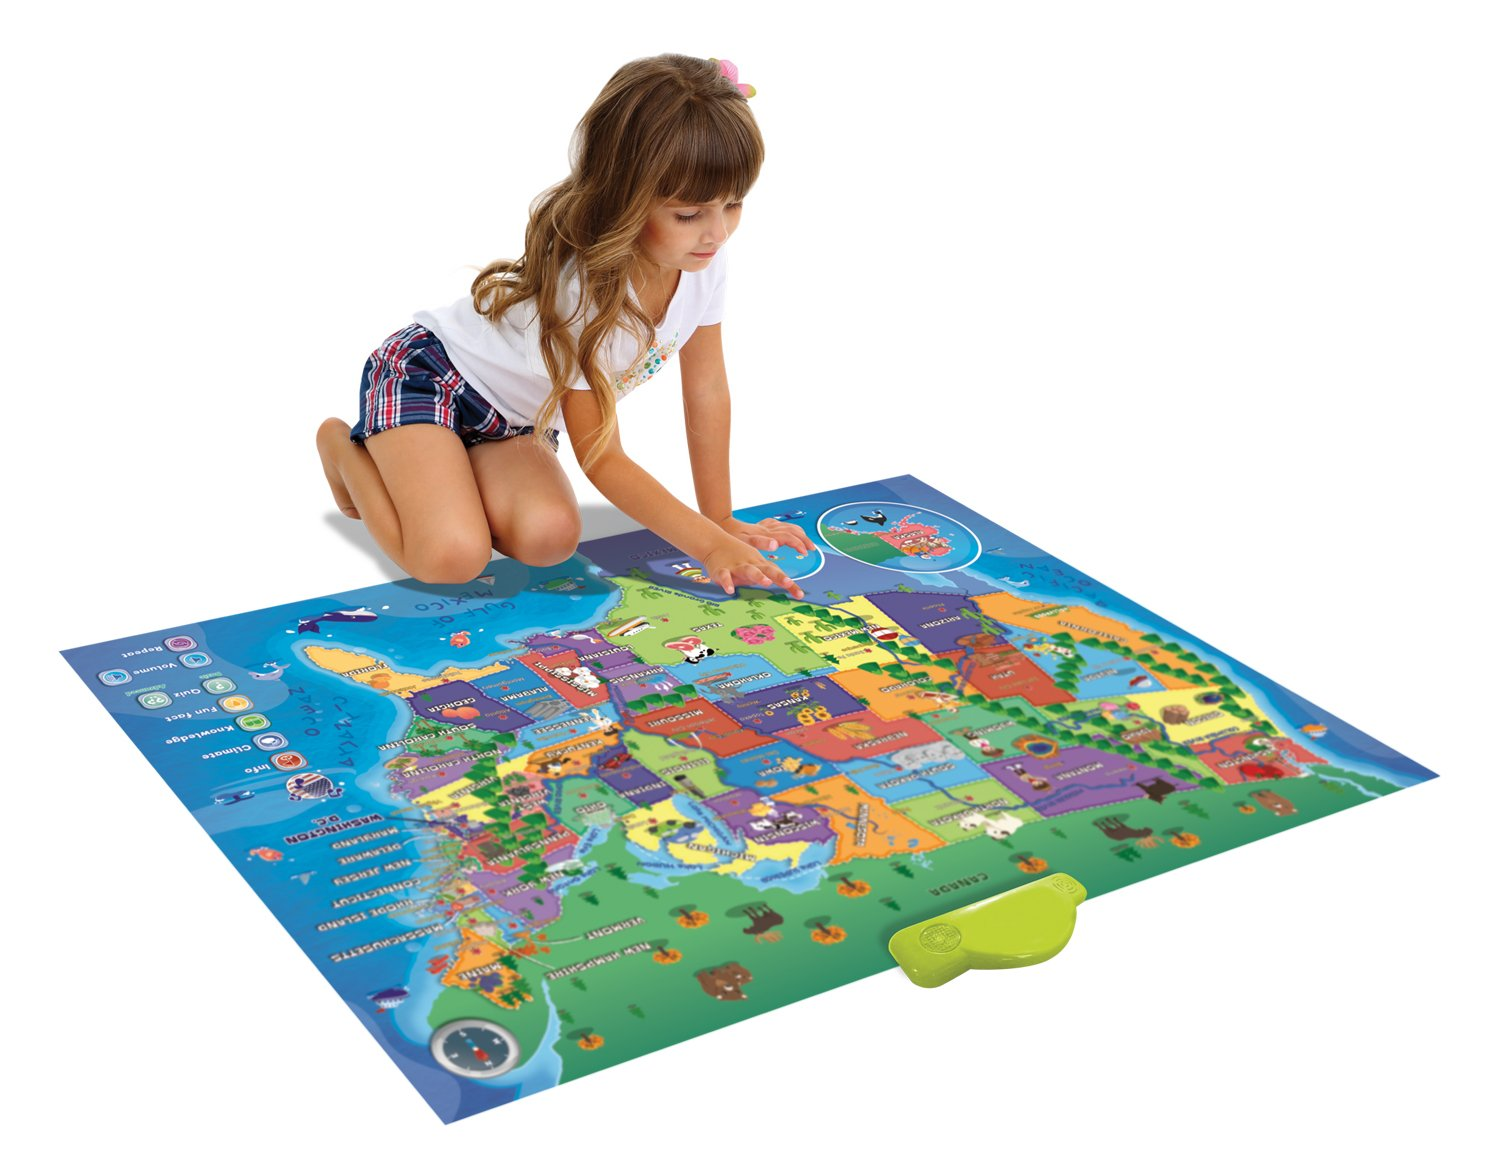 Learn & Climb Electronic Kids Map of the United States - 500 Facts and Quizzes About 50 USA States More Educational than Flash Cards and Map Puzzle Great Floor or Wall World Map for Kids Hours of Fun